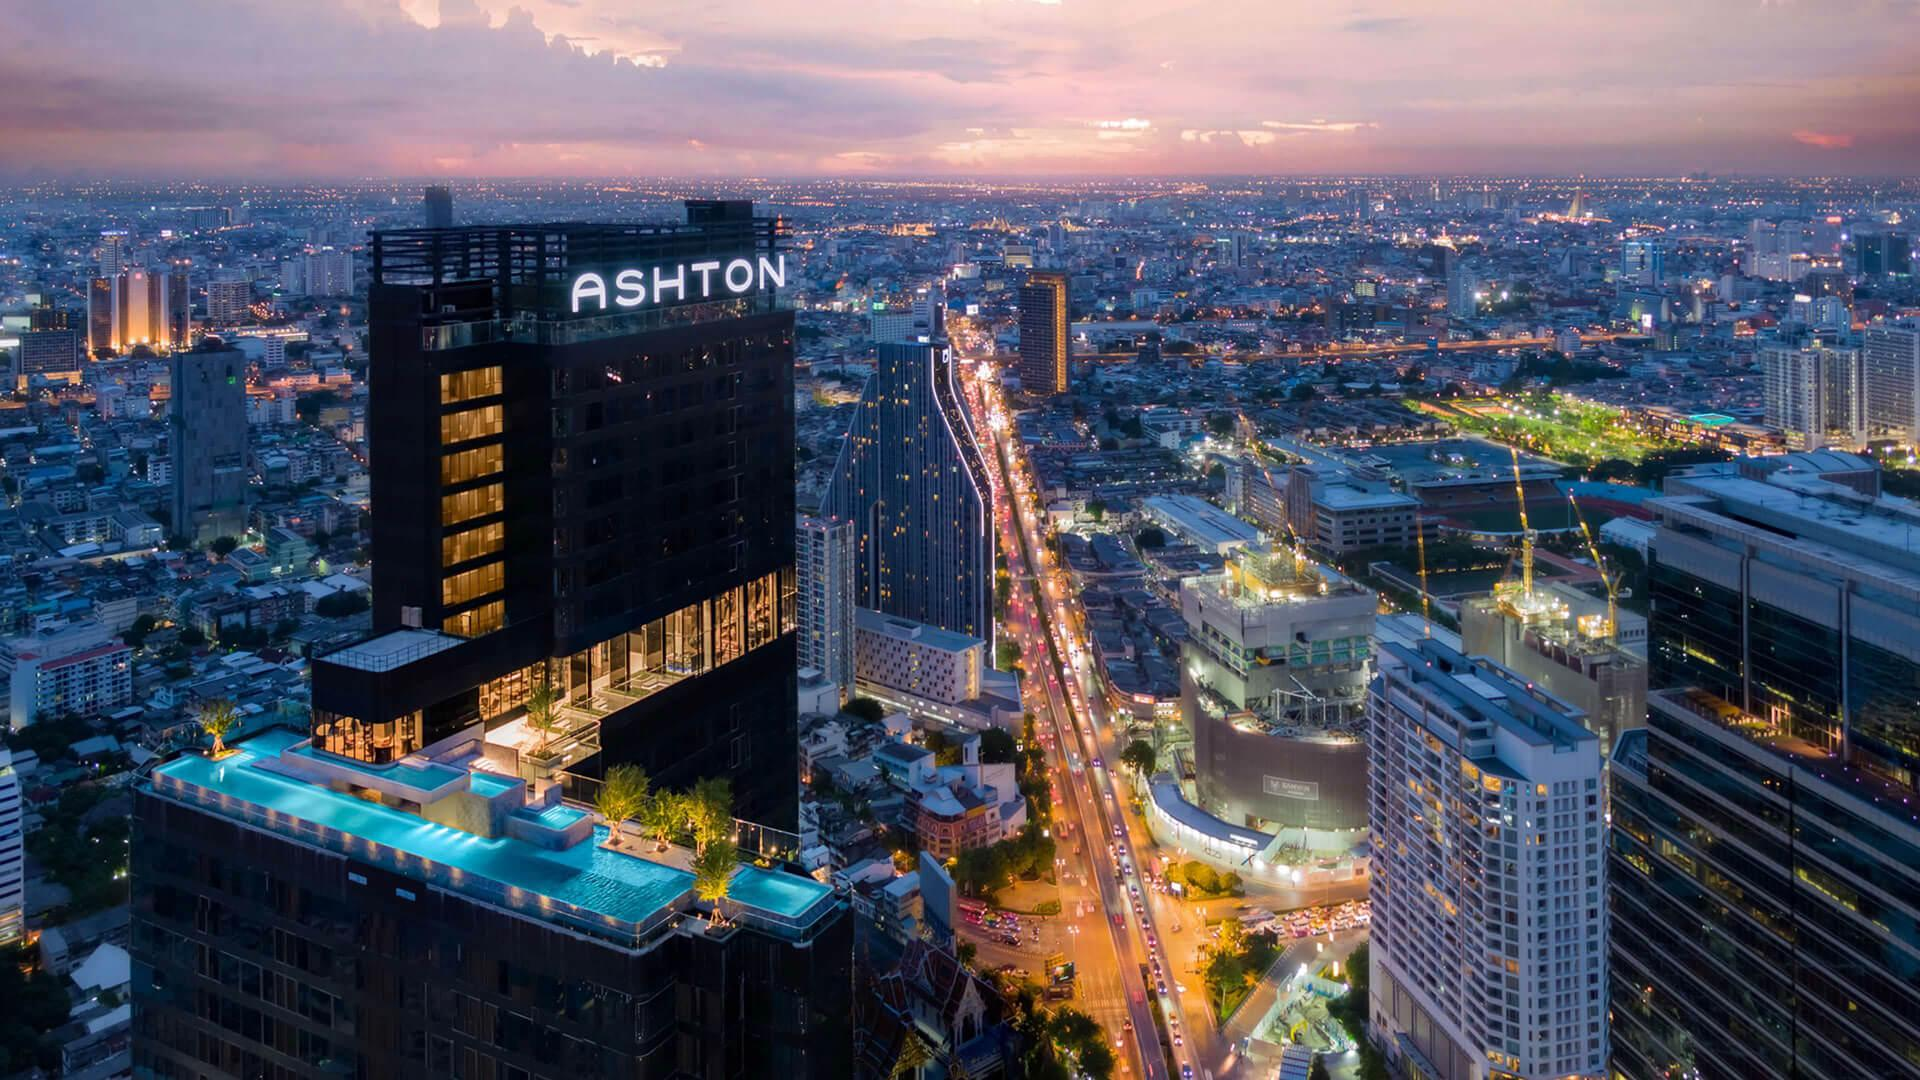 Drone shot of the Ashton condo complex in Bangkok, Thailand.